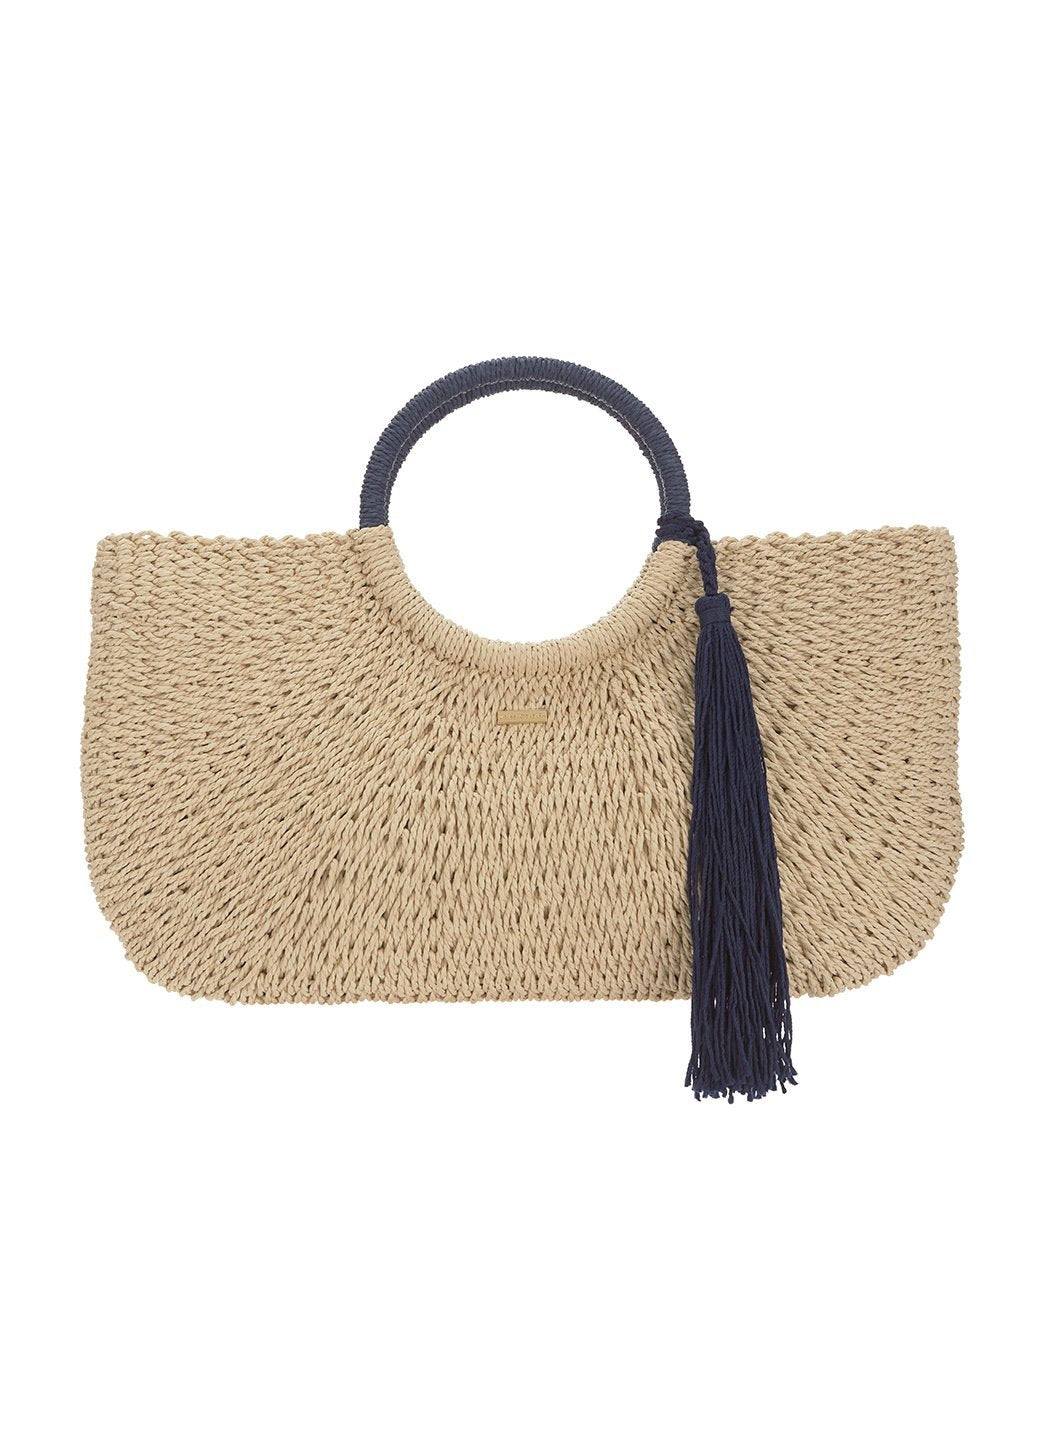 sorrento woven basket bag natural navy 2019